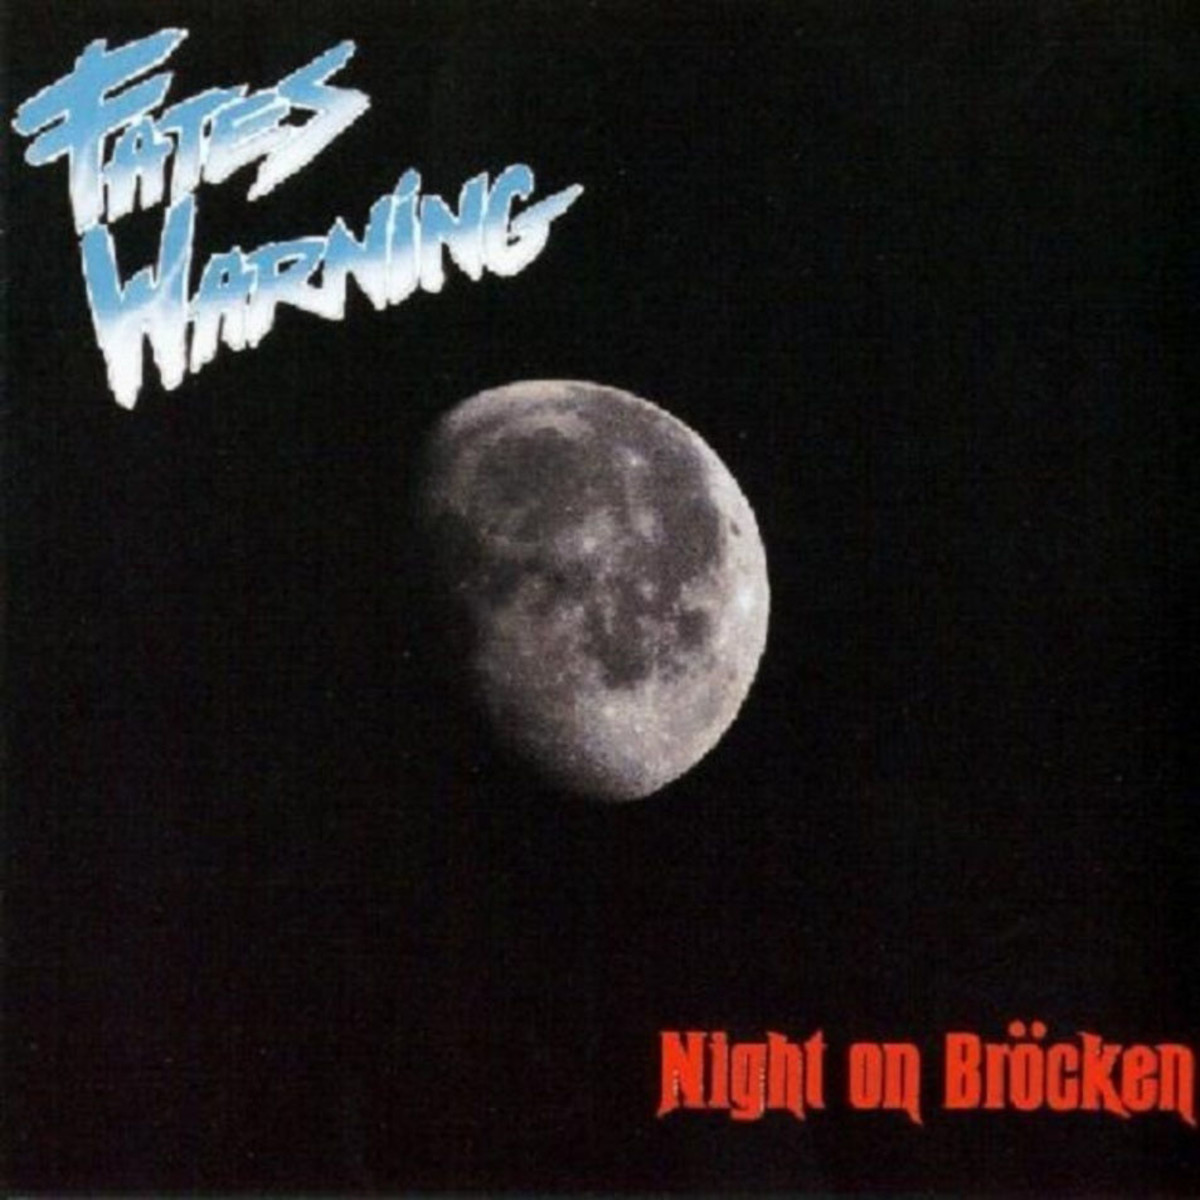 The full moon is on the cover and it symbolizes that night is upon us. Night on Brocken would be one of four good releases in the 1980's by Fates Warning.